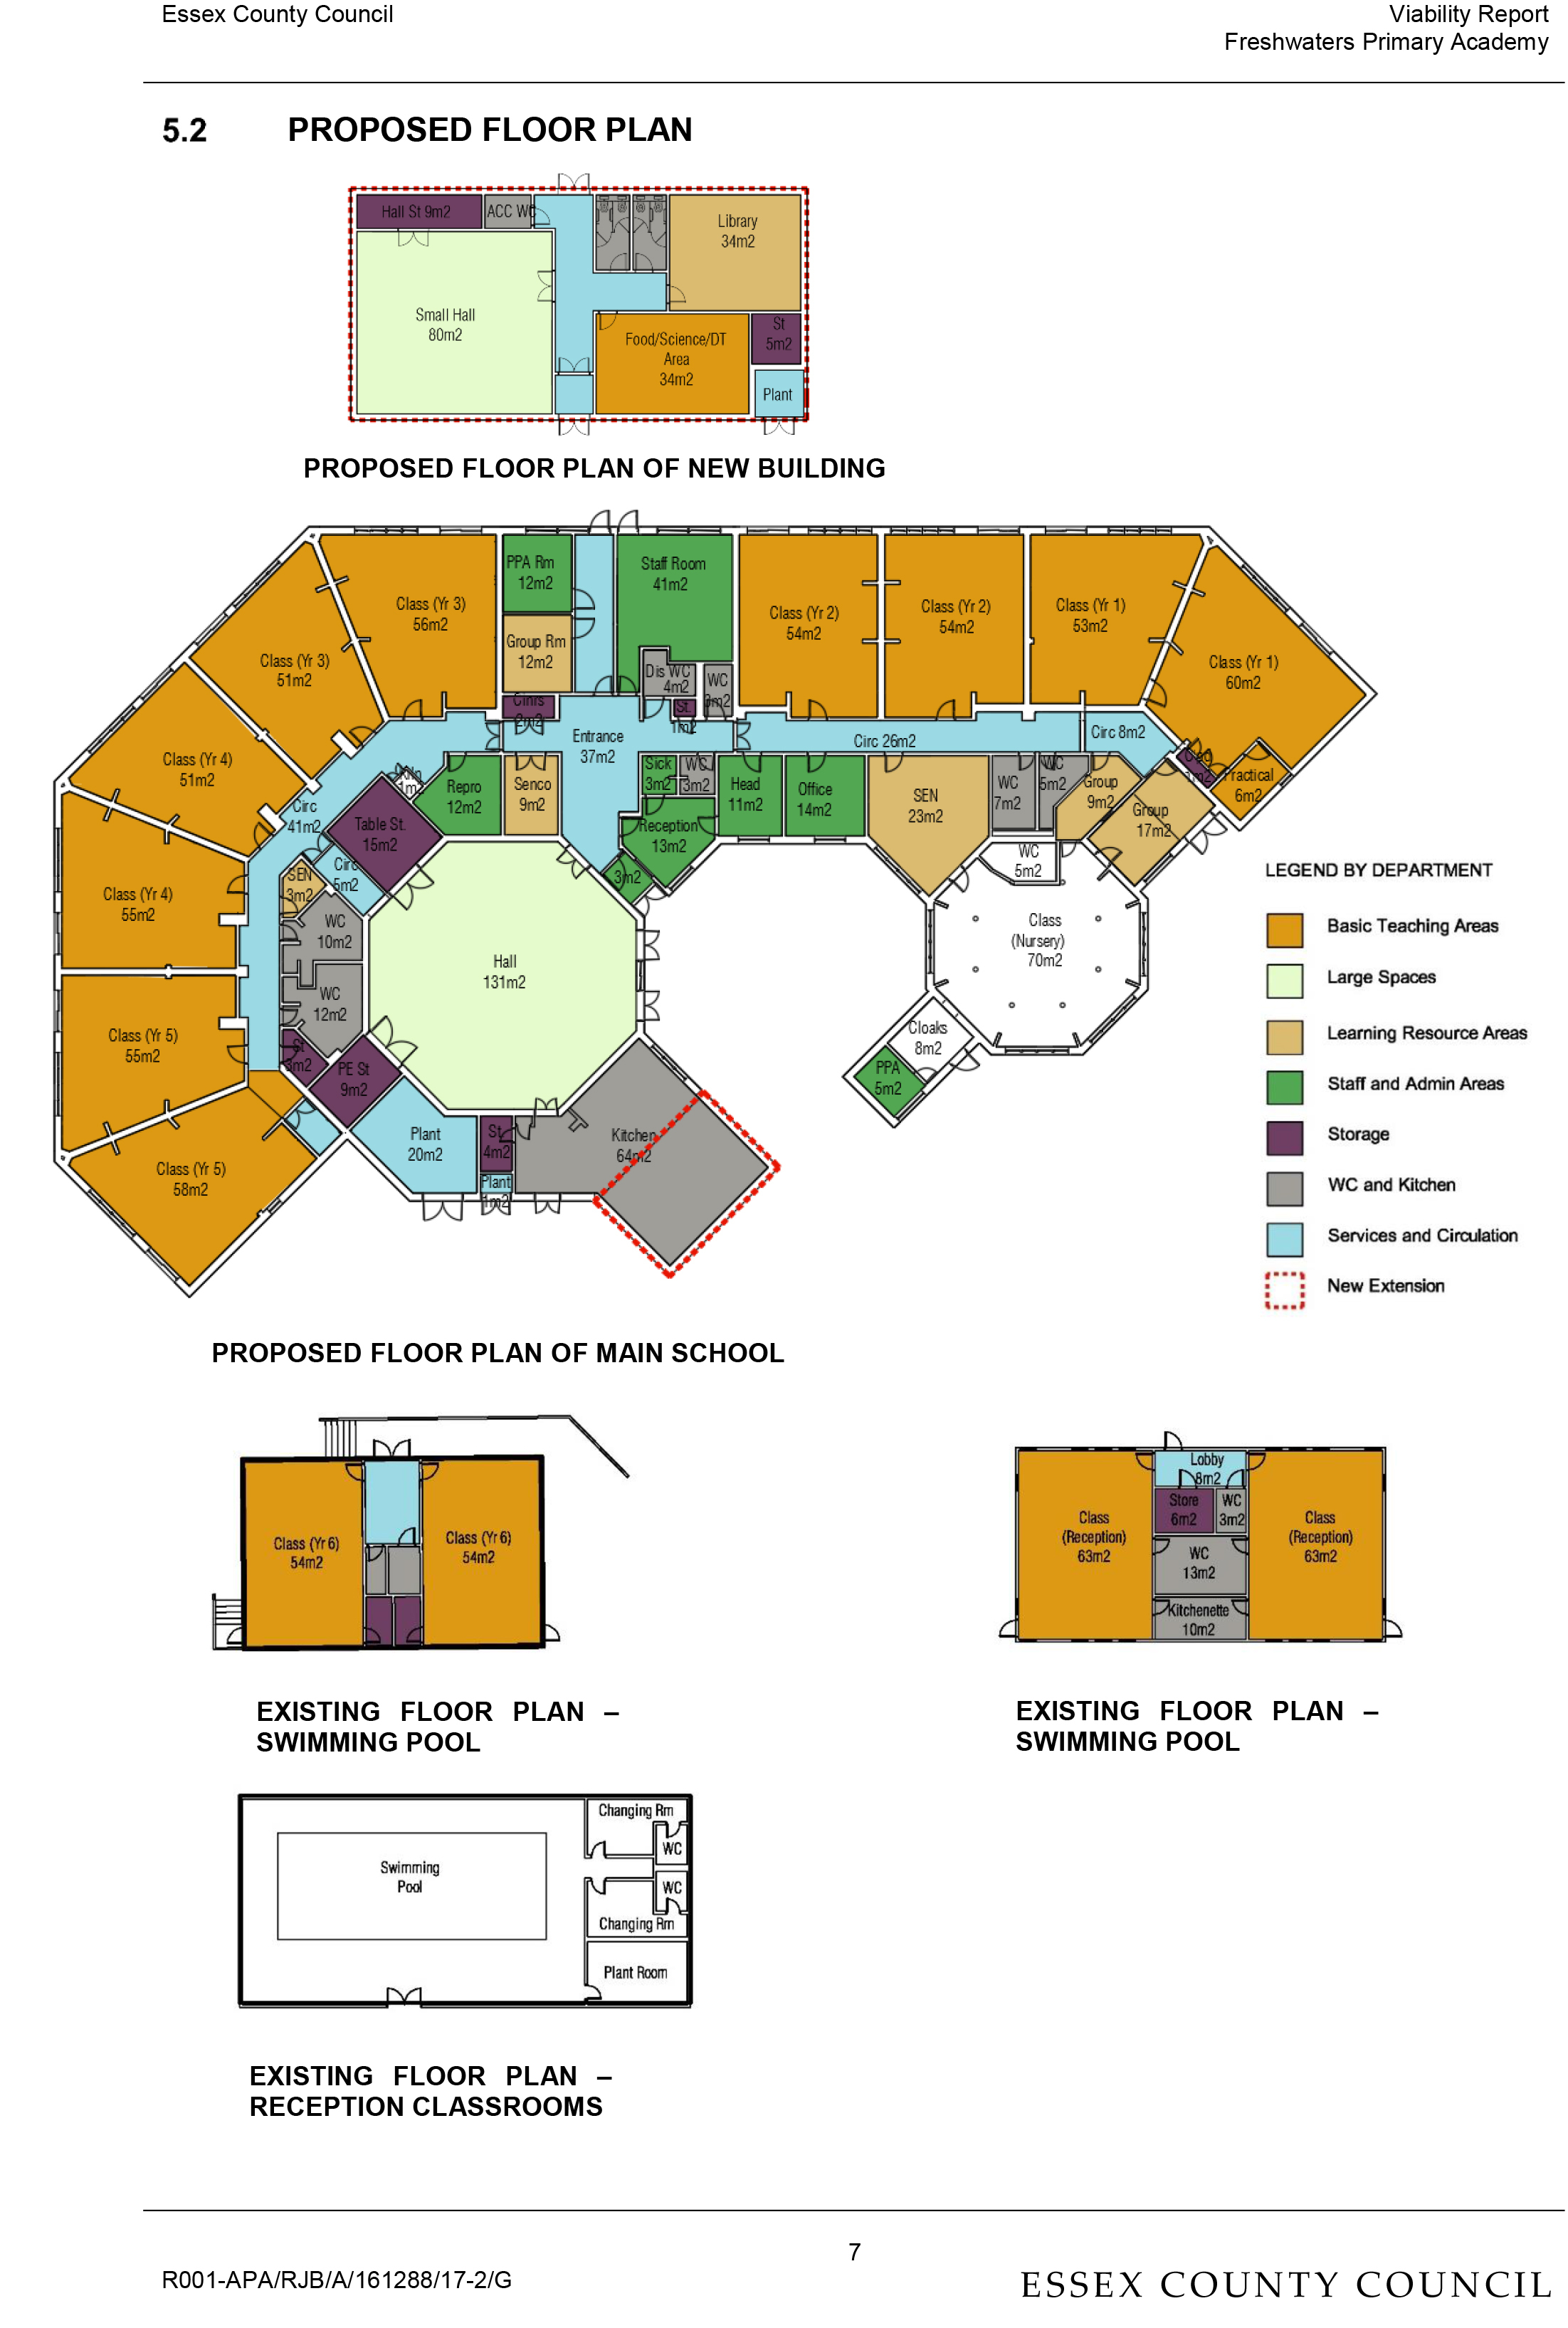 Freshwaters PS proposed layout (Rev G)